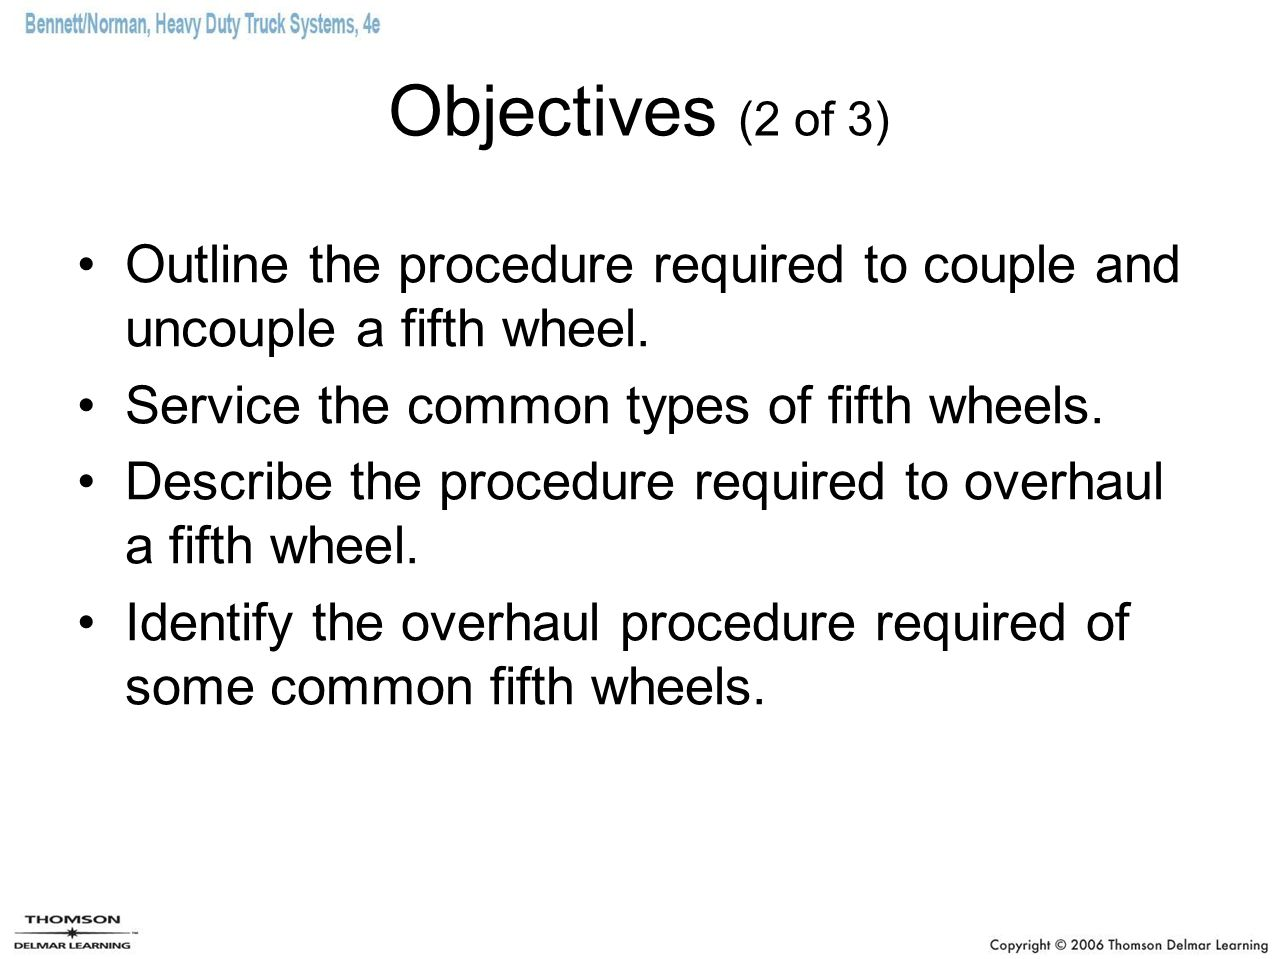 Objectives (2 of 3) Outline the procedure required to couple and uncouple a fifth wheel. Service the common types of fifth wheels.